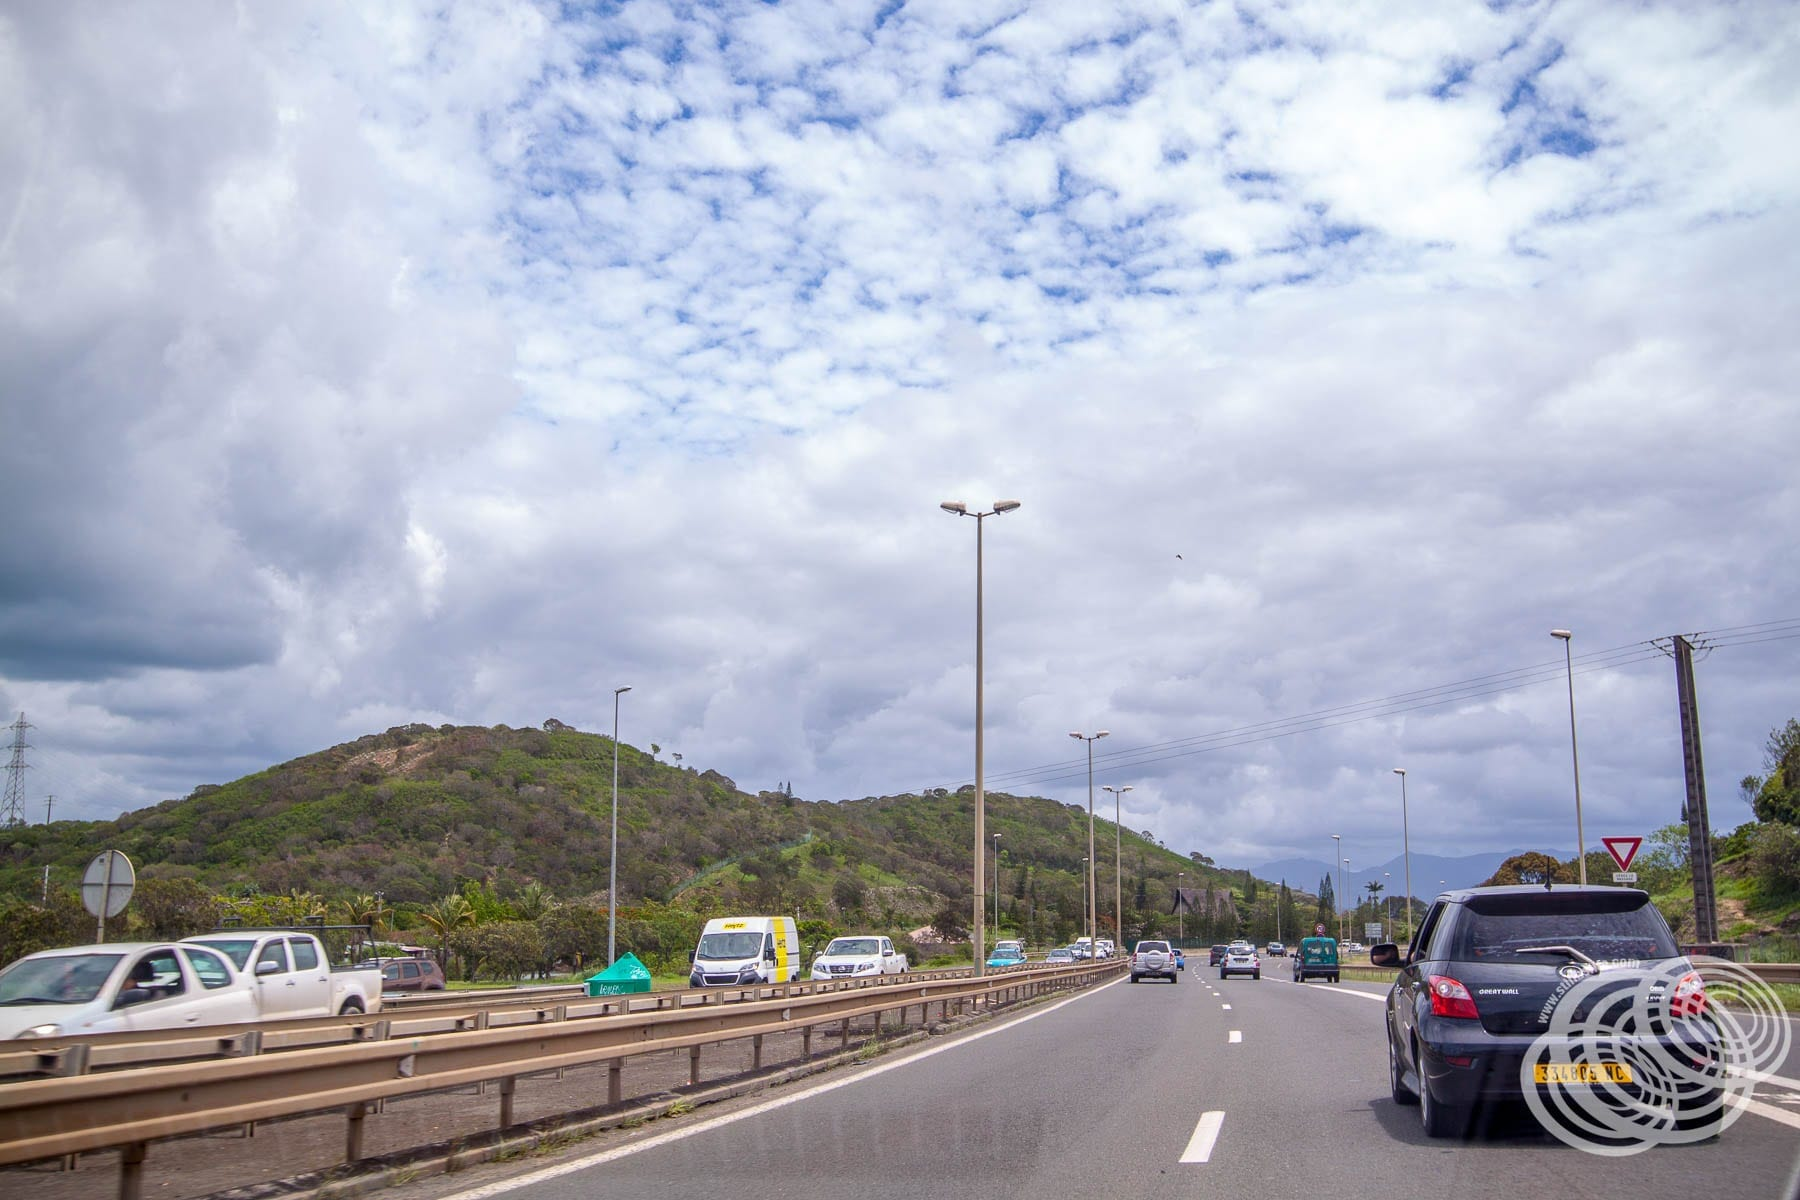 Driving out of Noumea